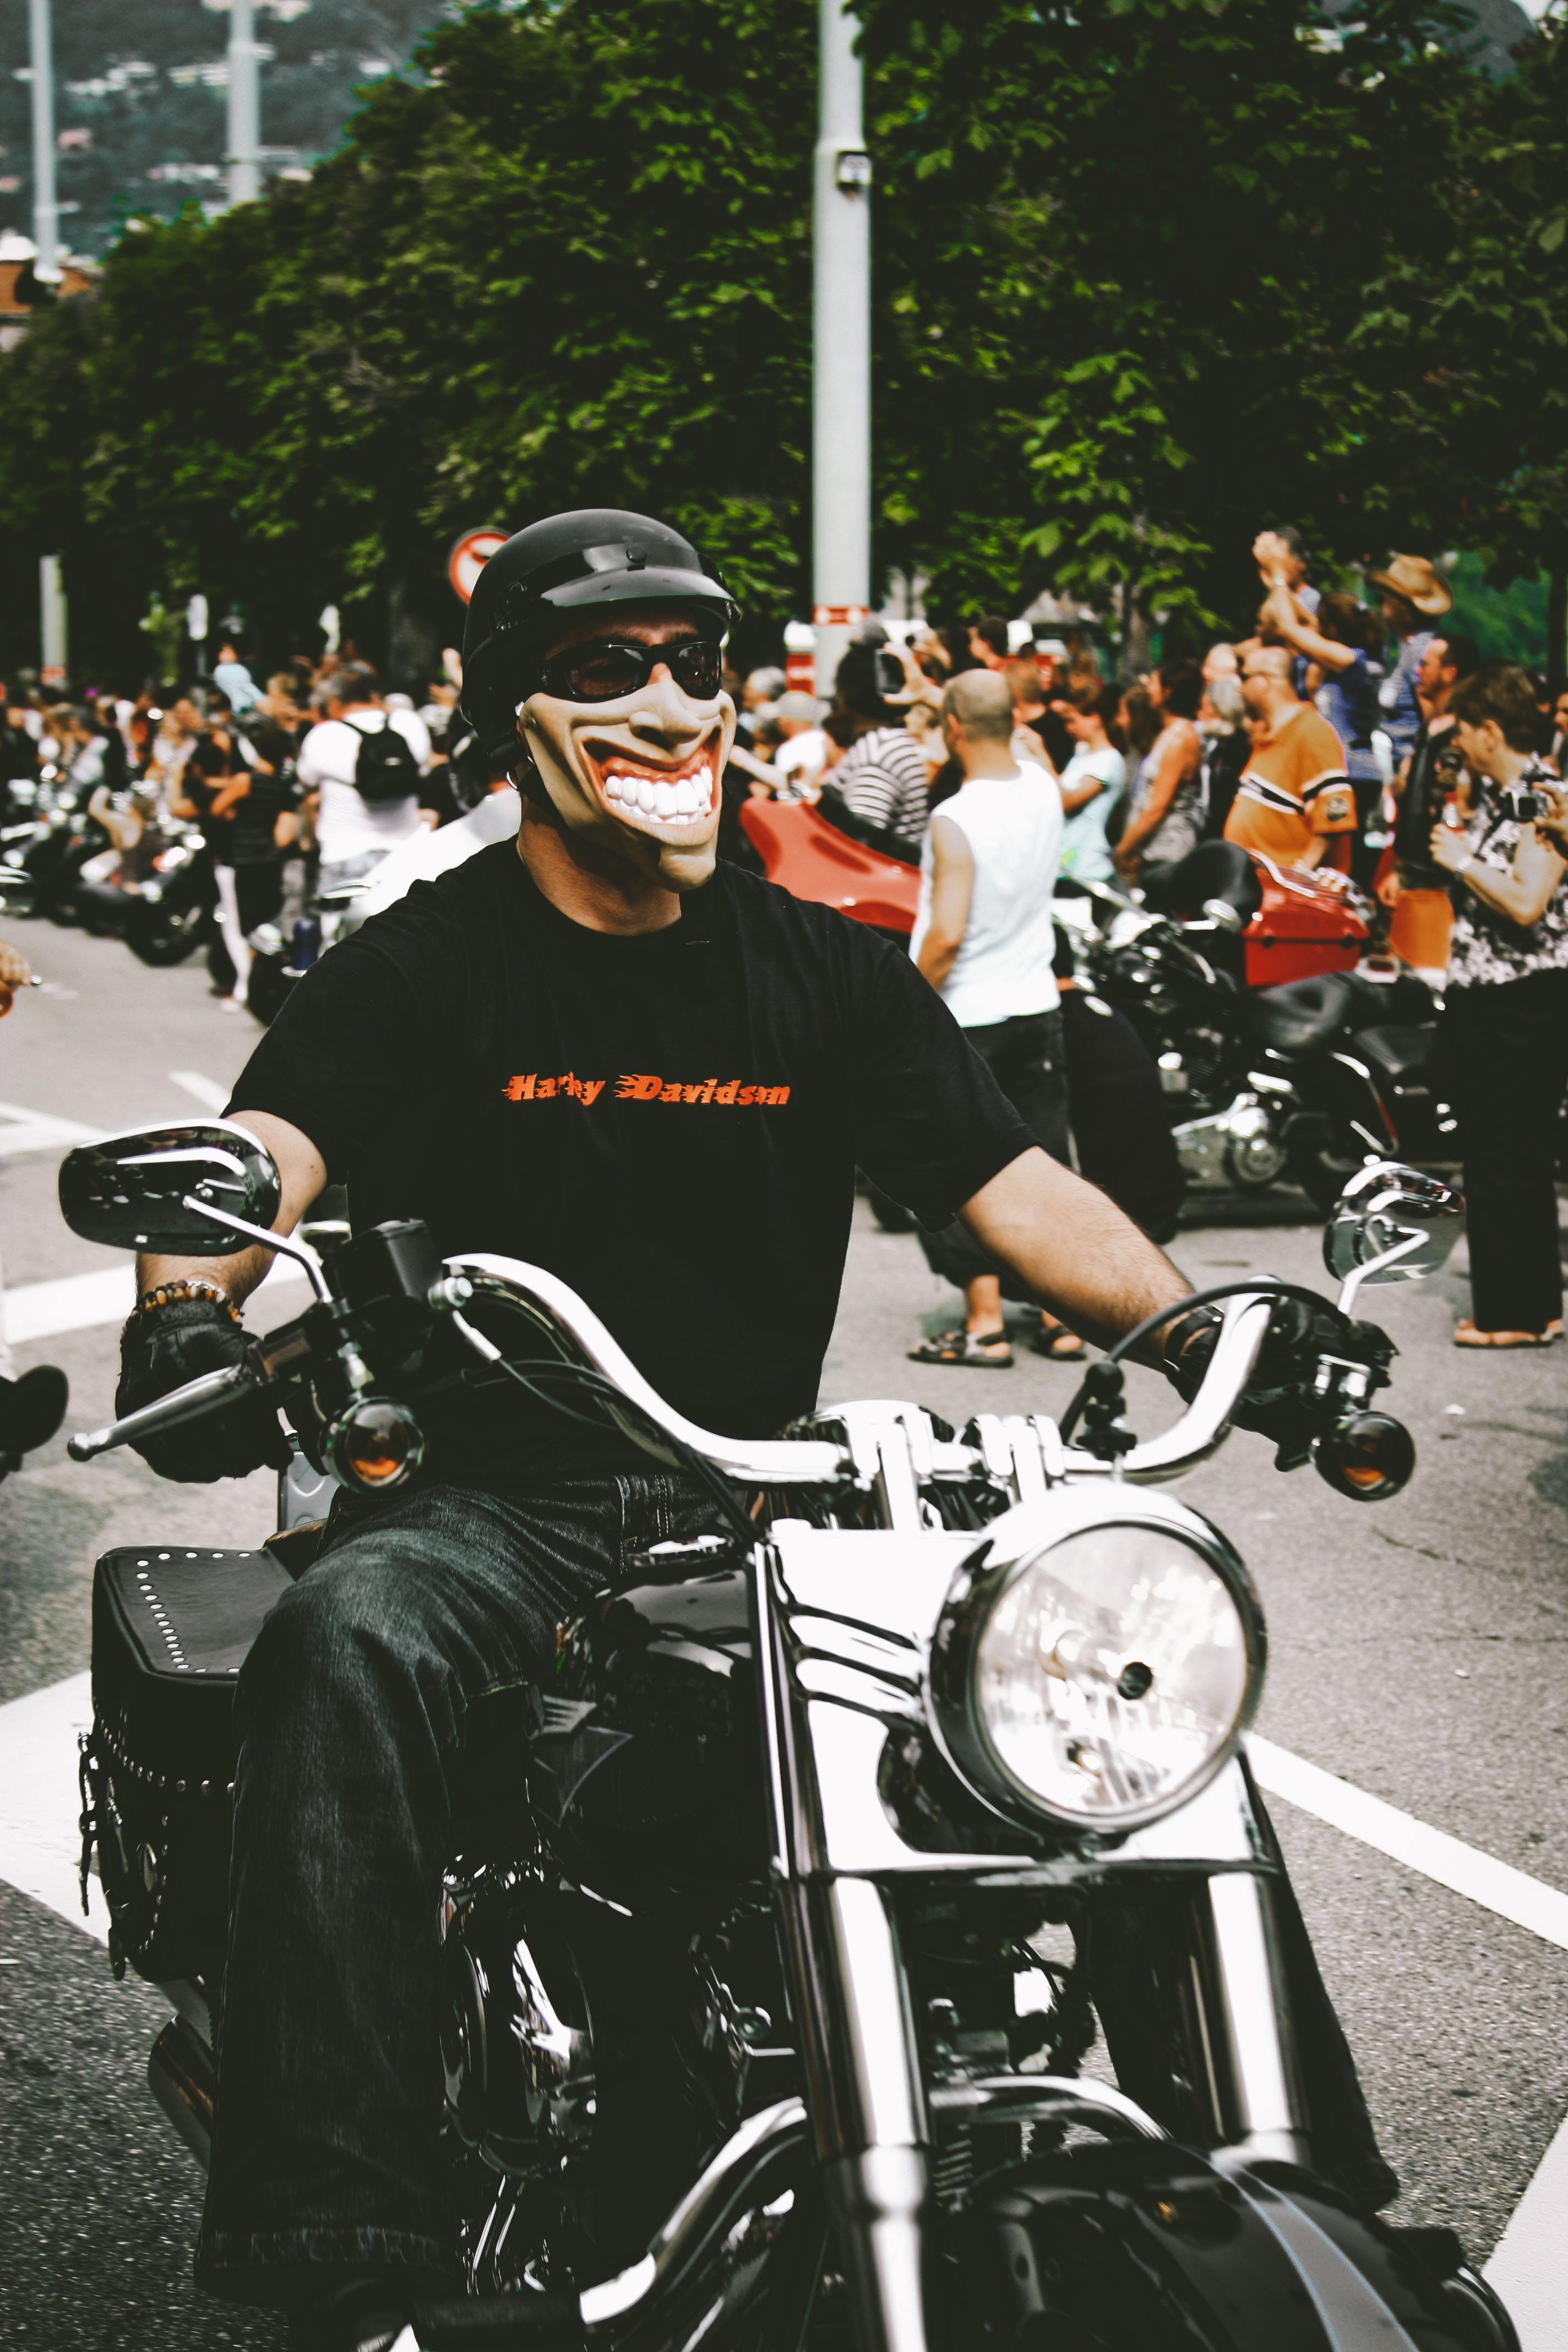 Photo of Man Riding Motorcycle While Wearing Mask